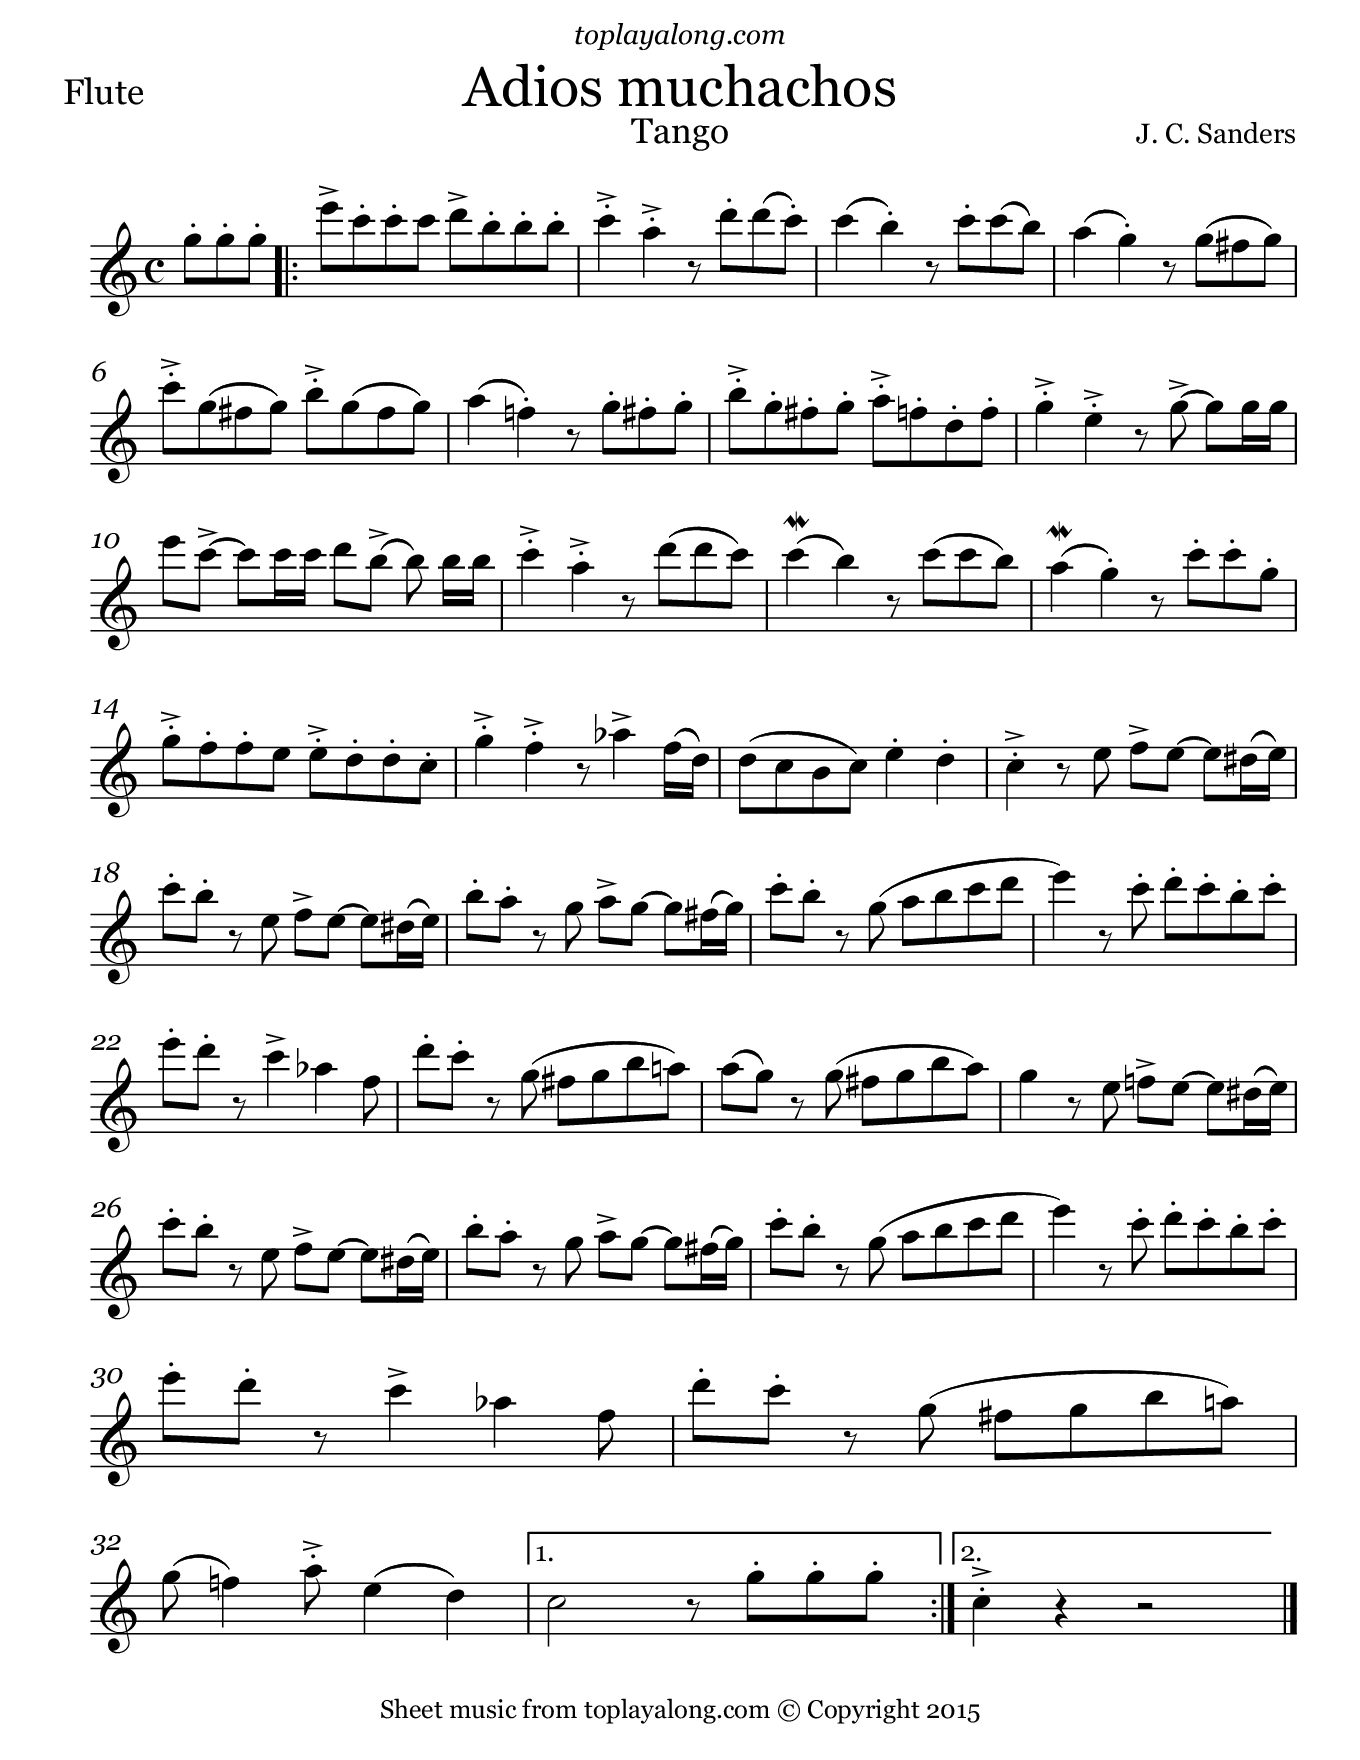 Adios Muchachos by Sanders. Sheet music for Flute, page 1.